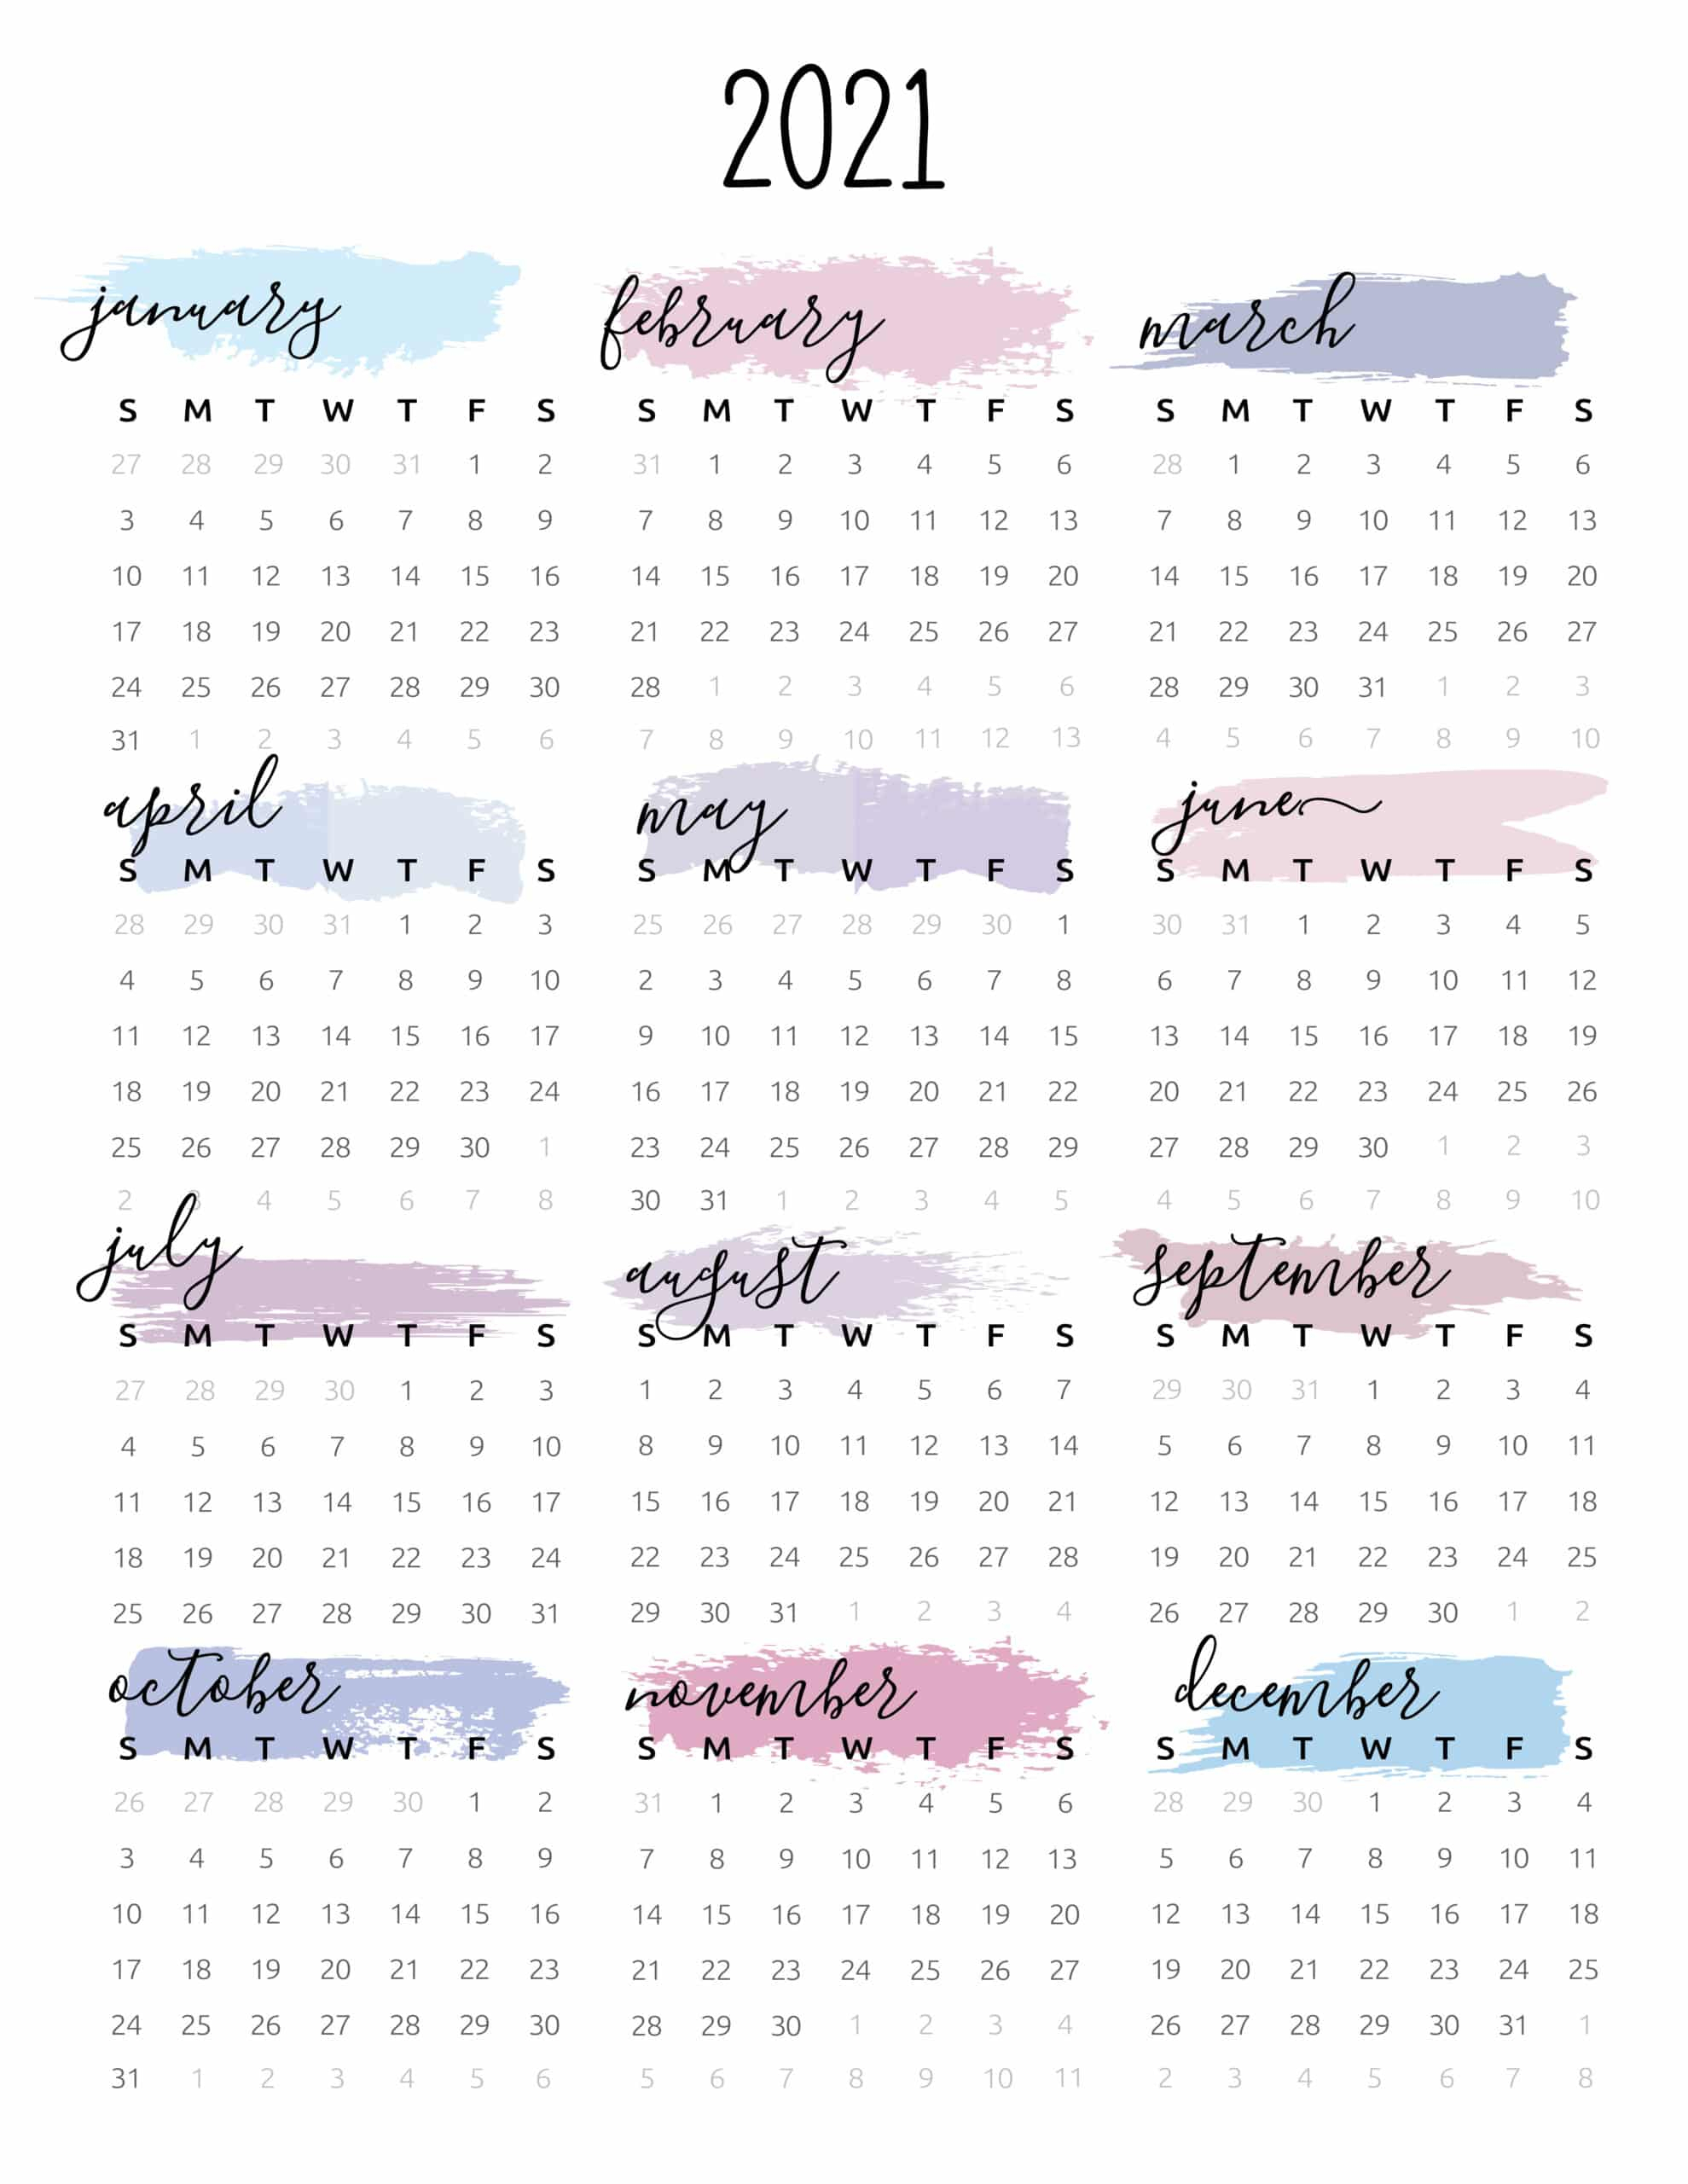 Watercolor One Page 2021 Calendar  World Of Printables within Free 3 Month Calendar One Page 2021